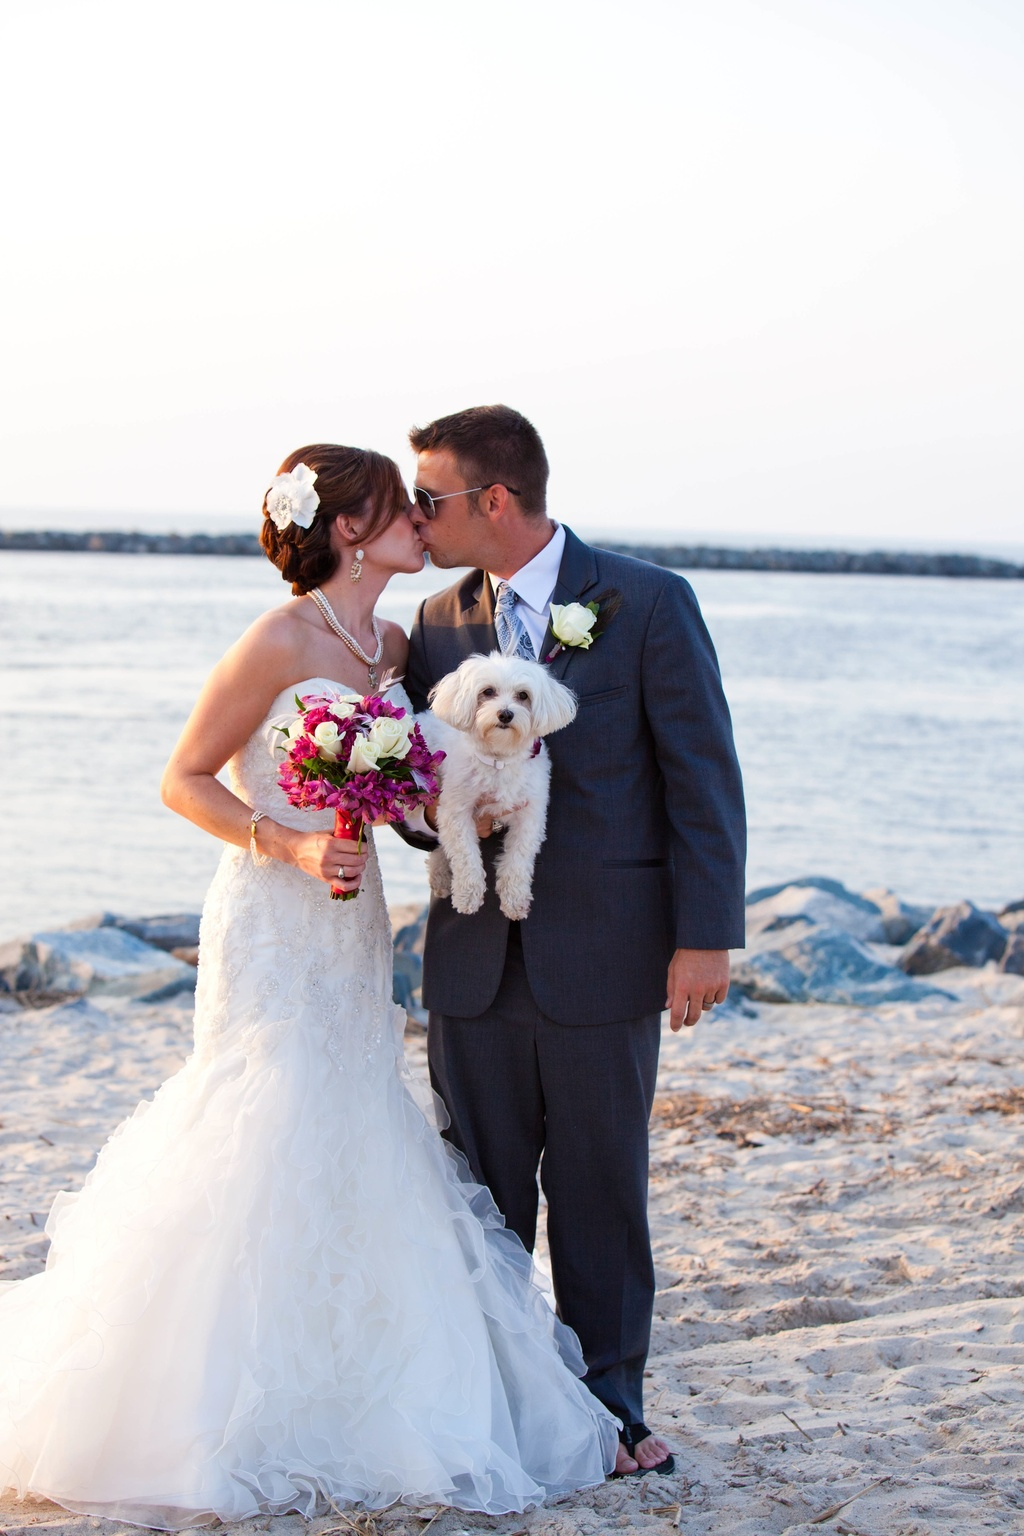 Beach-wedding-in-delaware-bride-groom-kiss-while-holding-dog.full